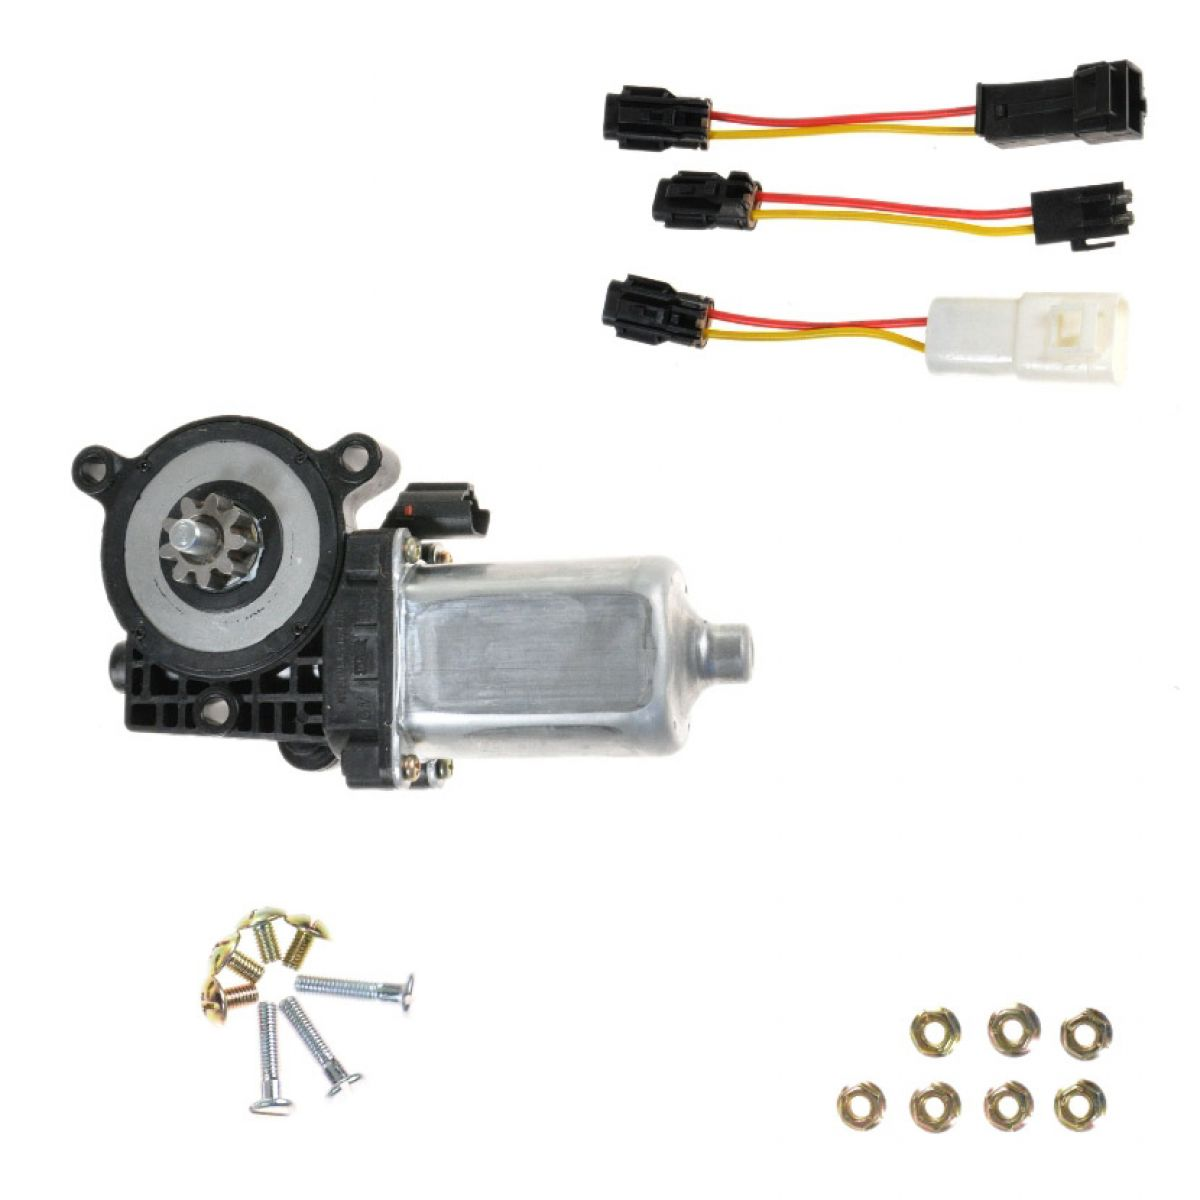 Power Buick Gmc Of Salem Home: Dorman Power Window Lift Motor For Buick Cadillac Olds